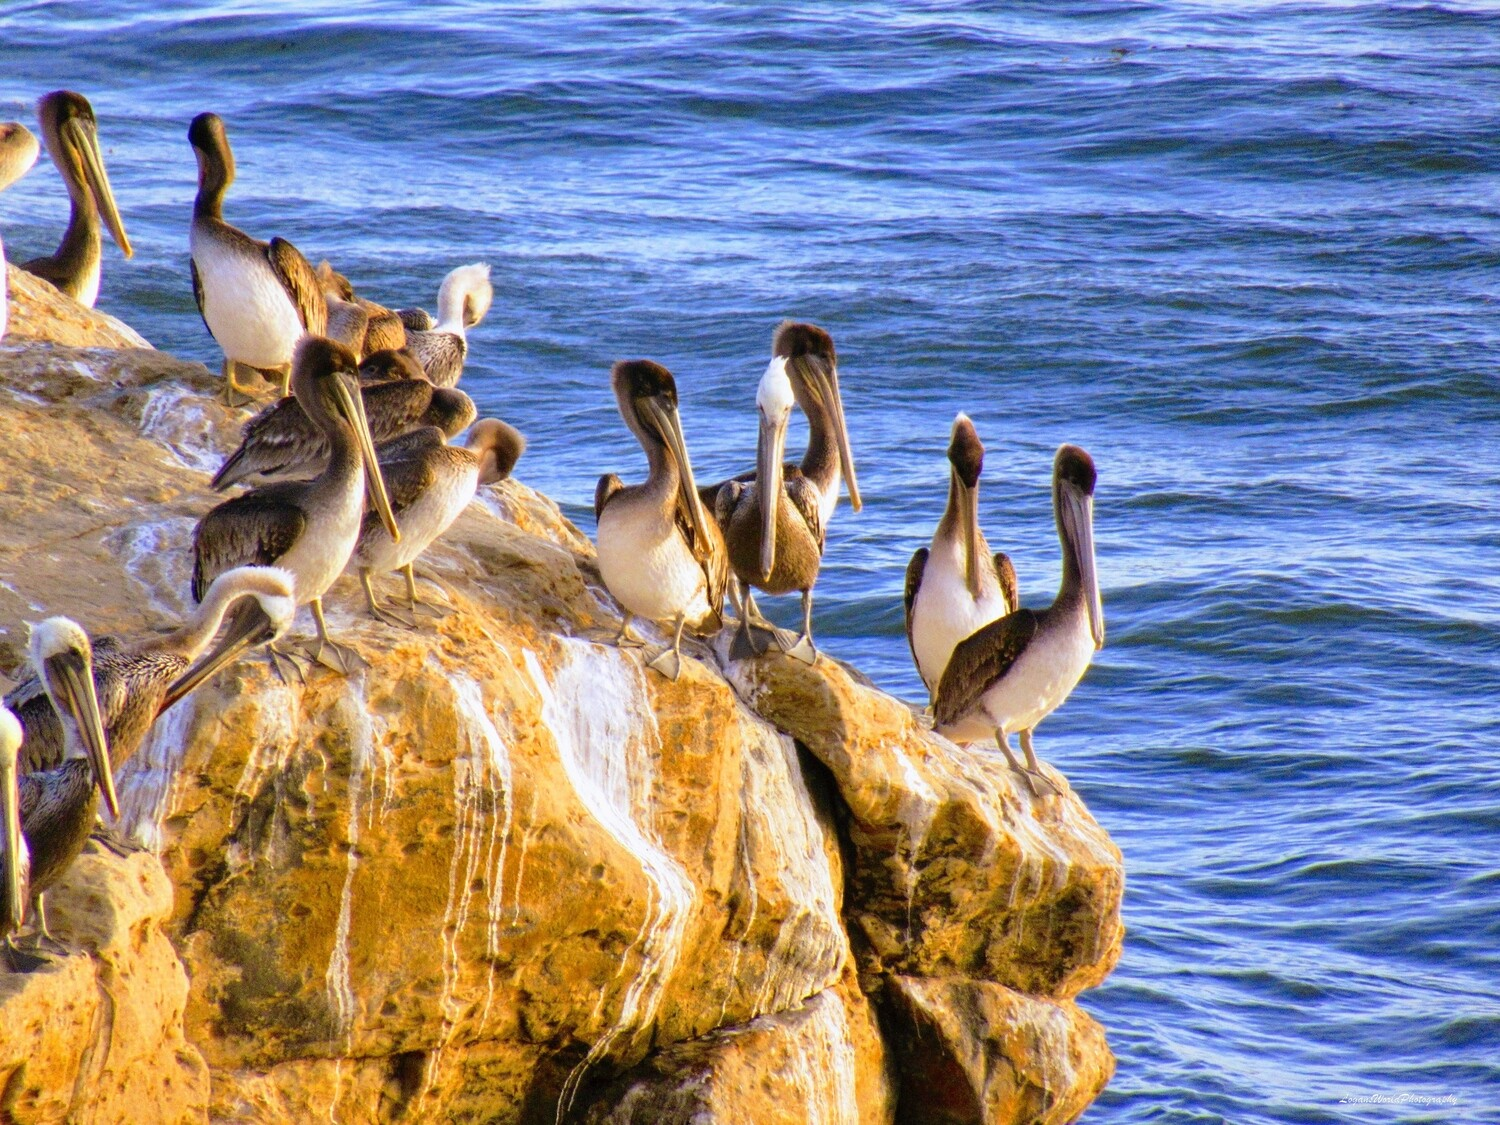 "Pelicans on a Rock 12"" x 16"" Photo Print"